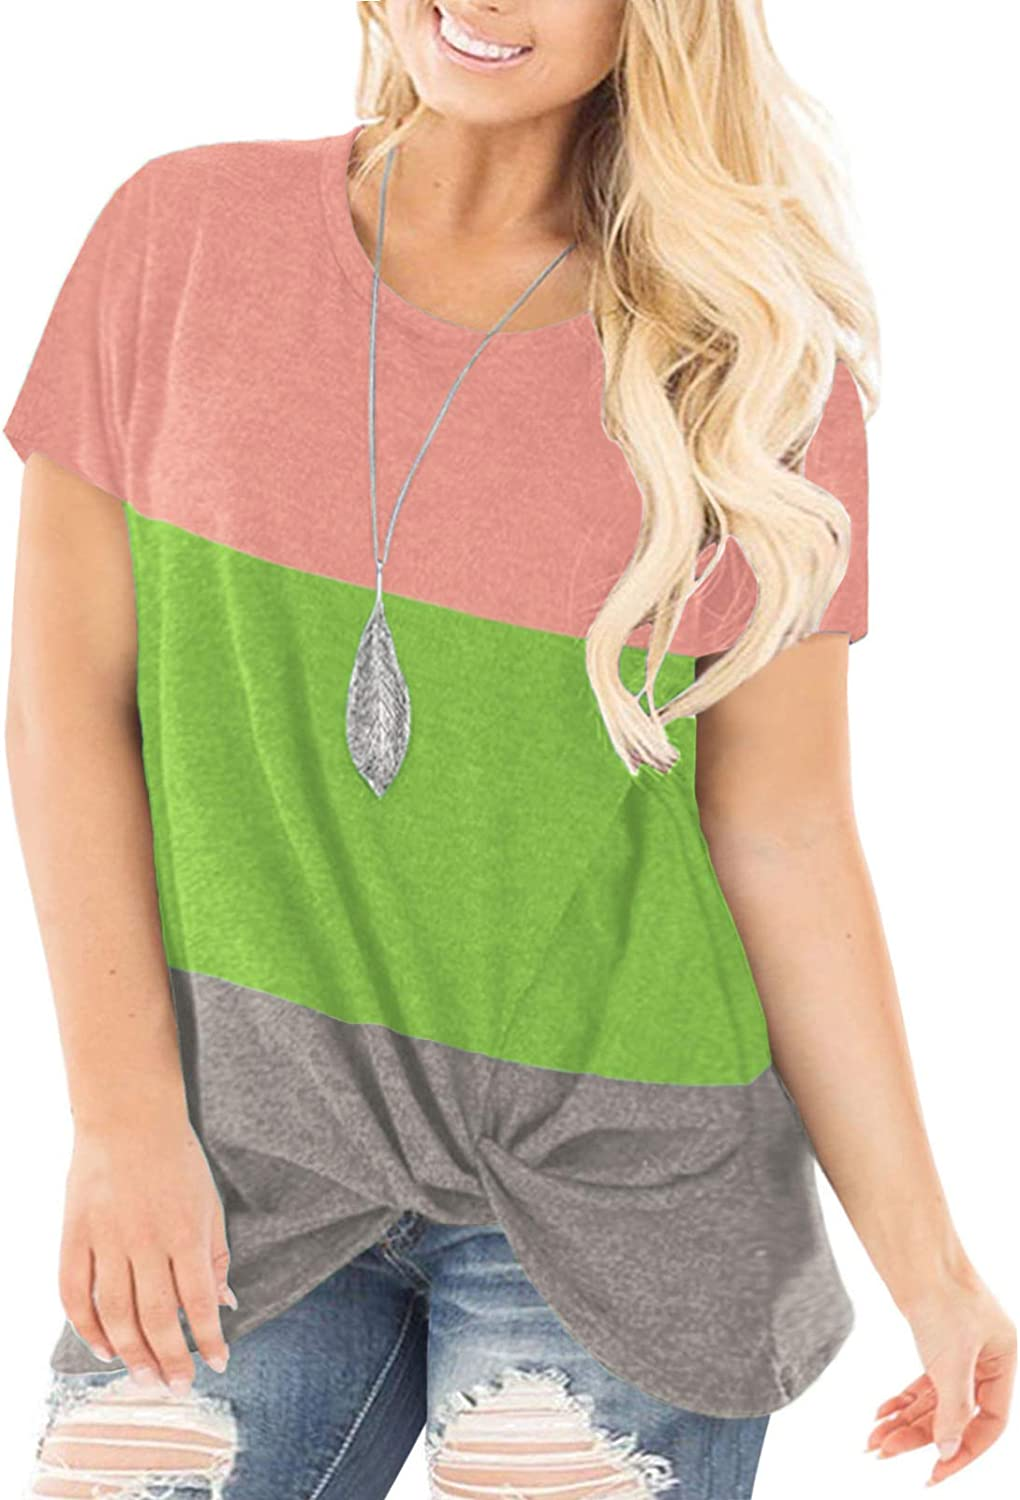 AURISSY Plus-Size Tops for Women Summer Short Sleeve Shirts Knotted Tunics